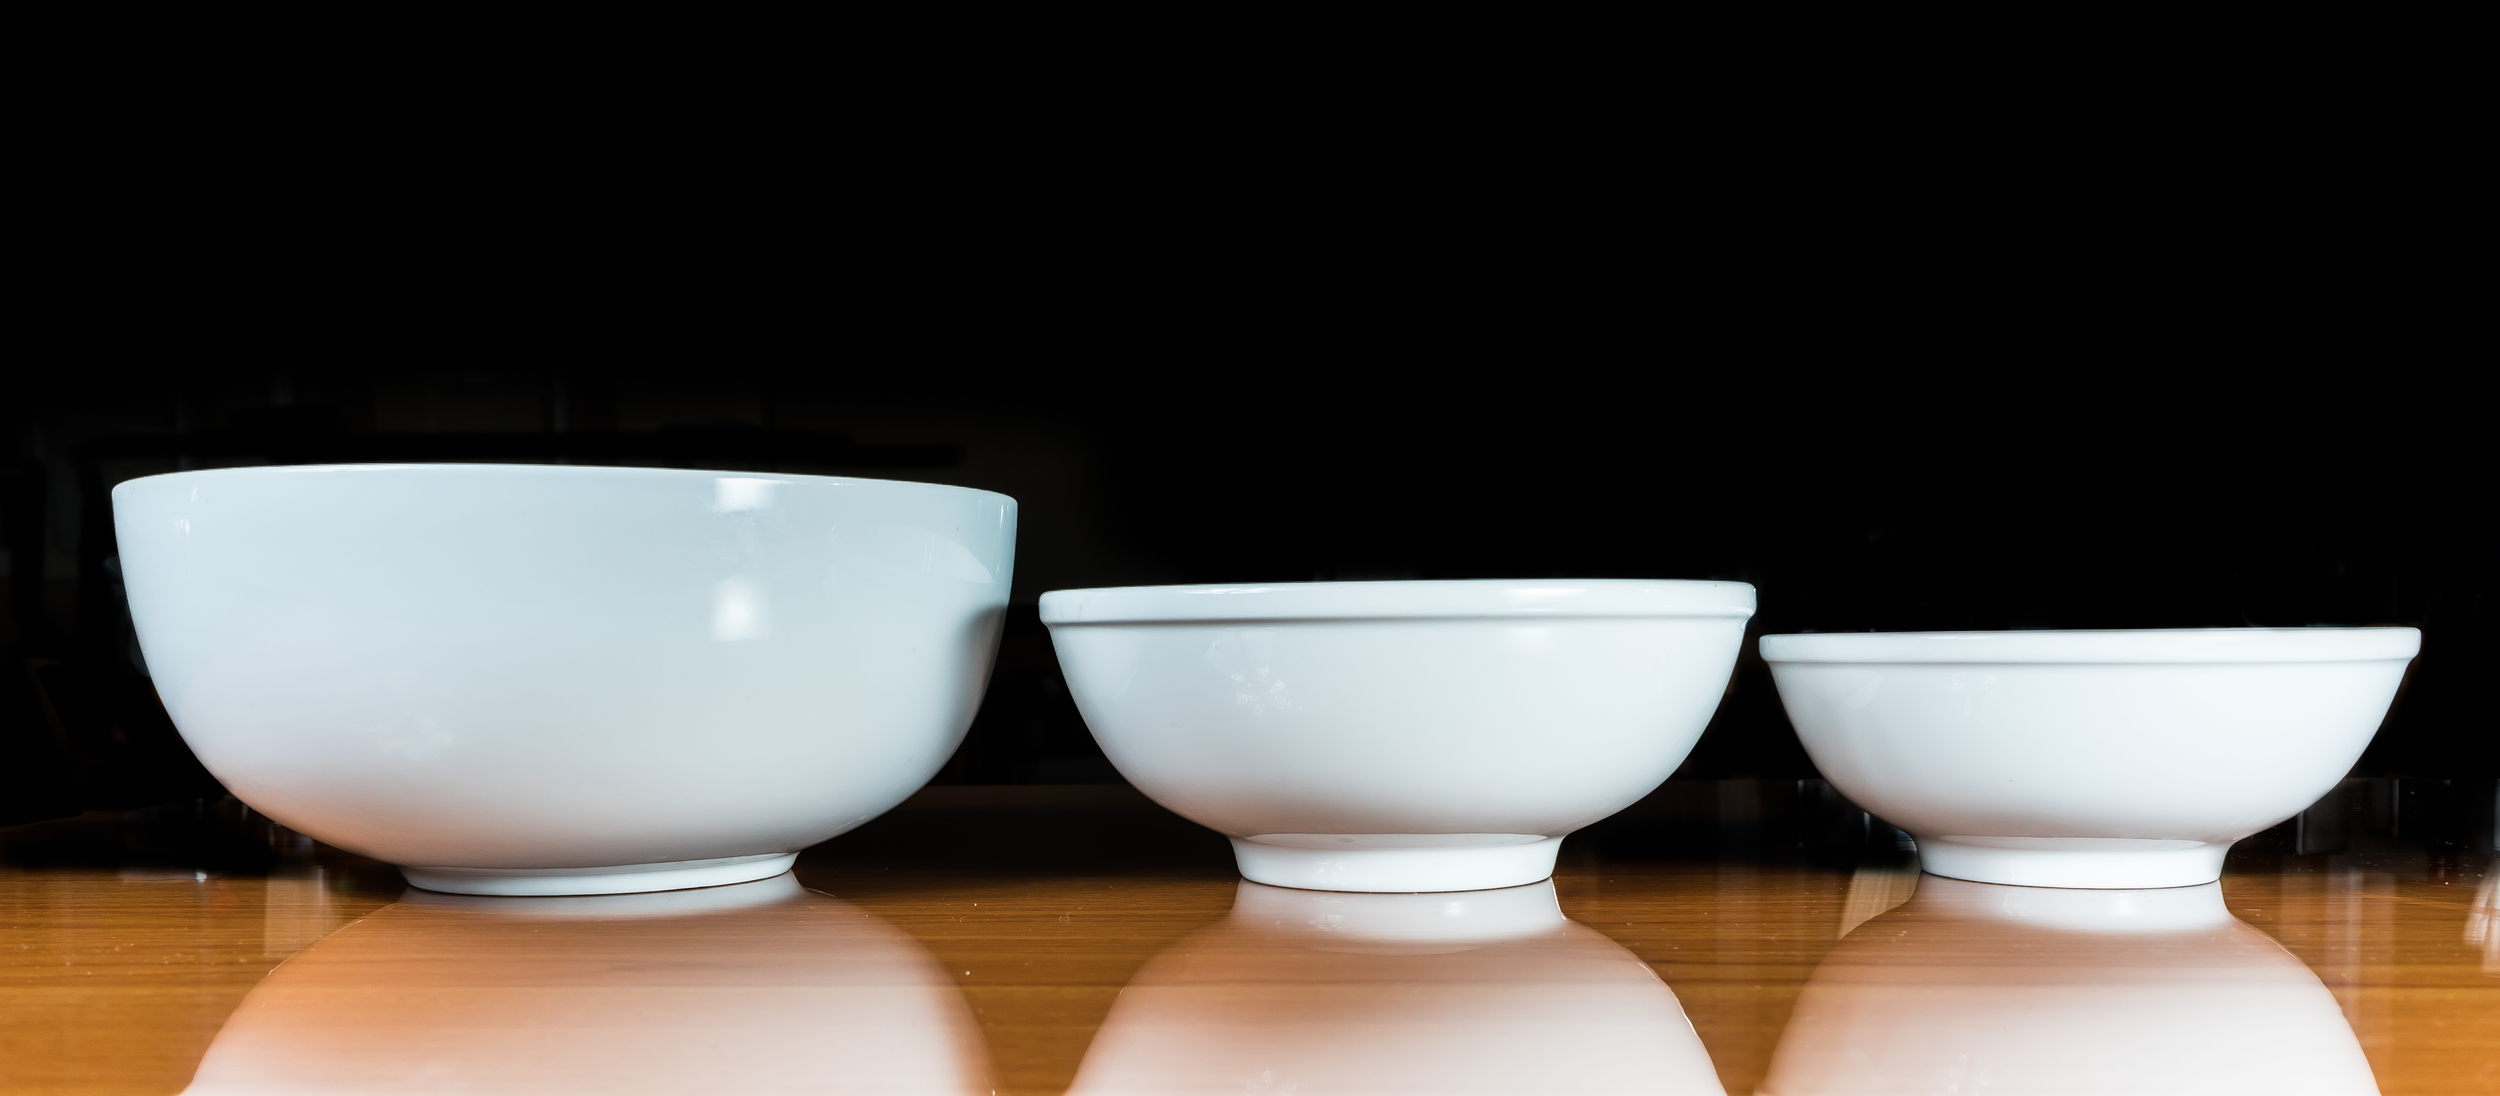 From Left To Right: Pho 102 Bowl, Large Bowl, Small Bowl